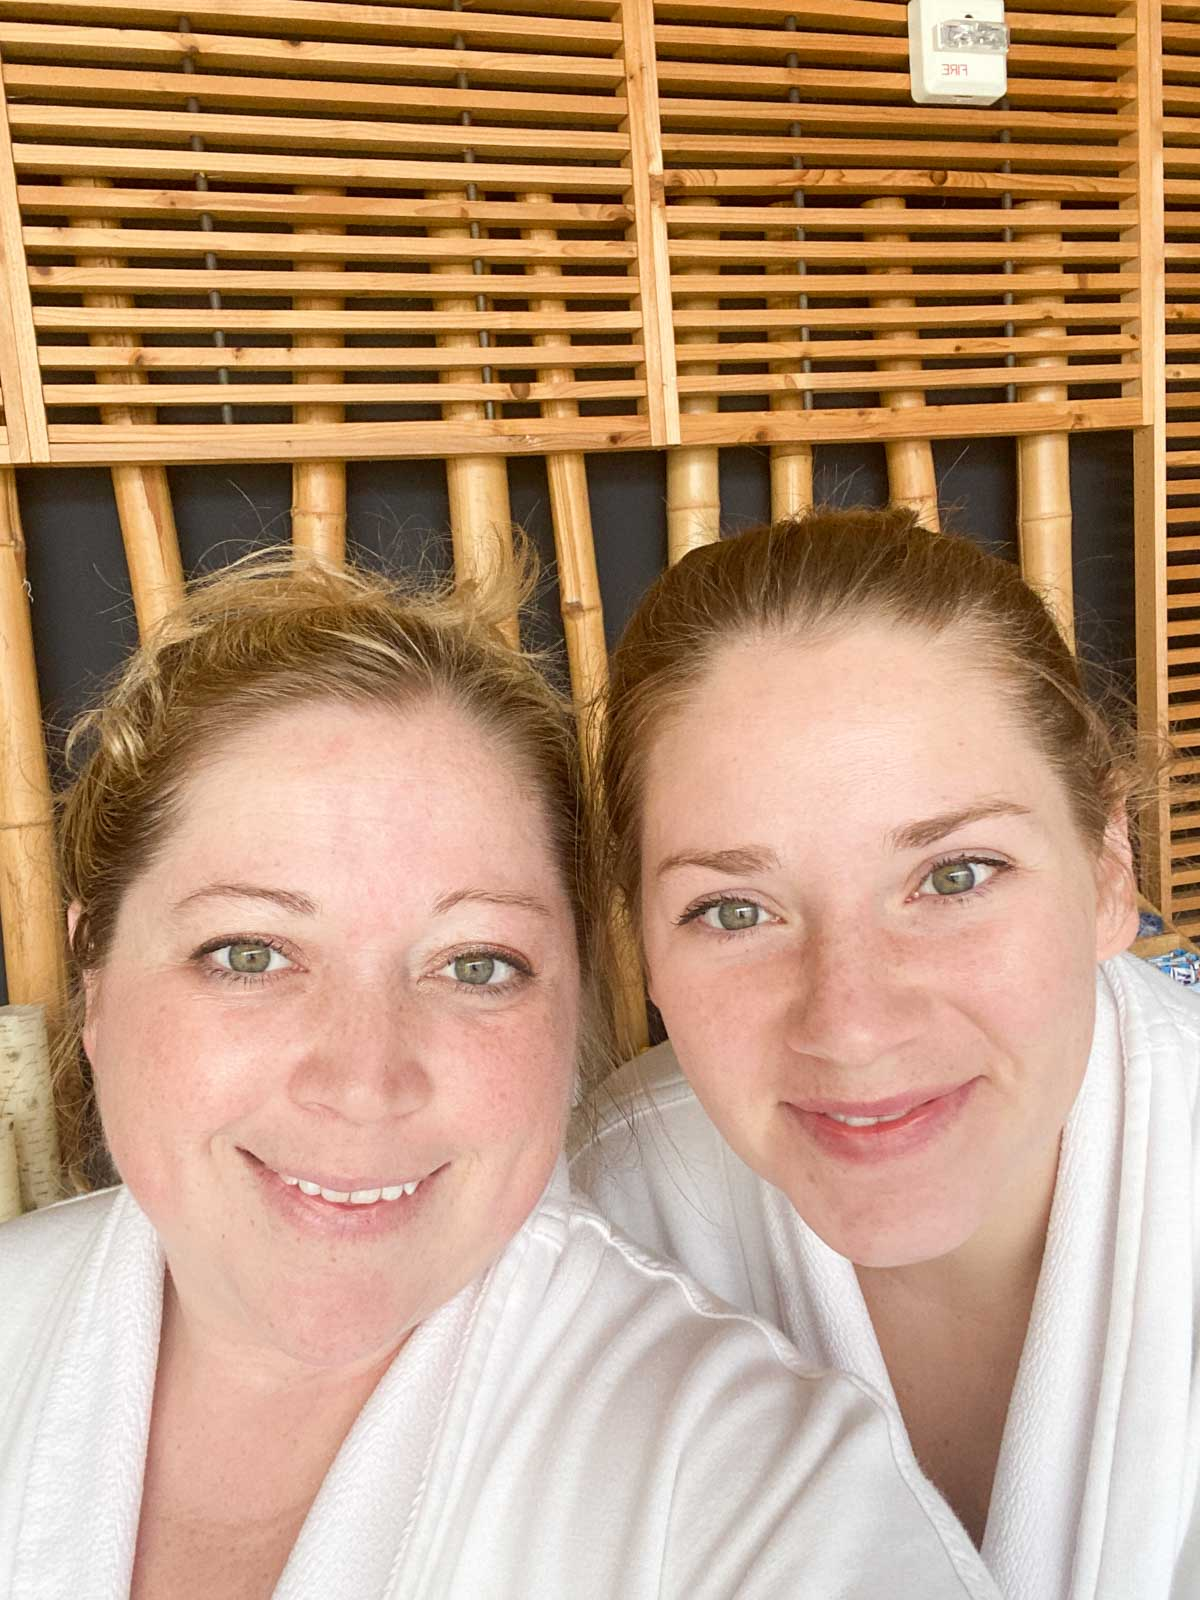 Selfie of two women in robes at a spa